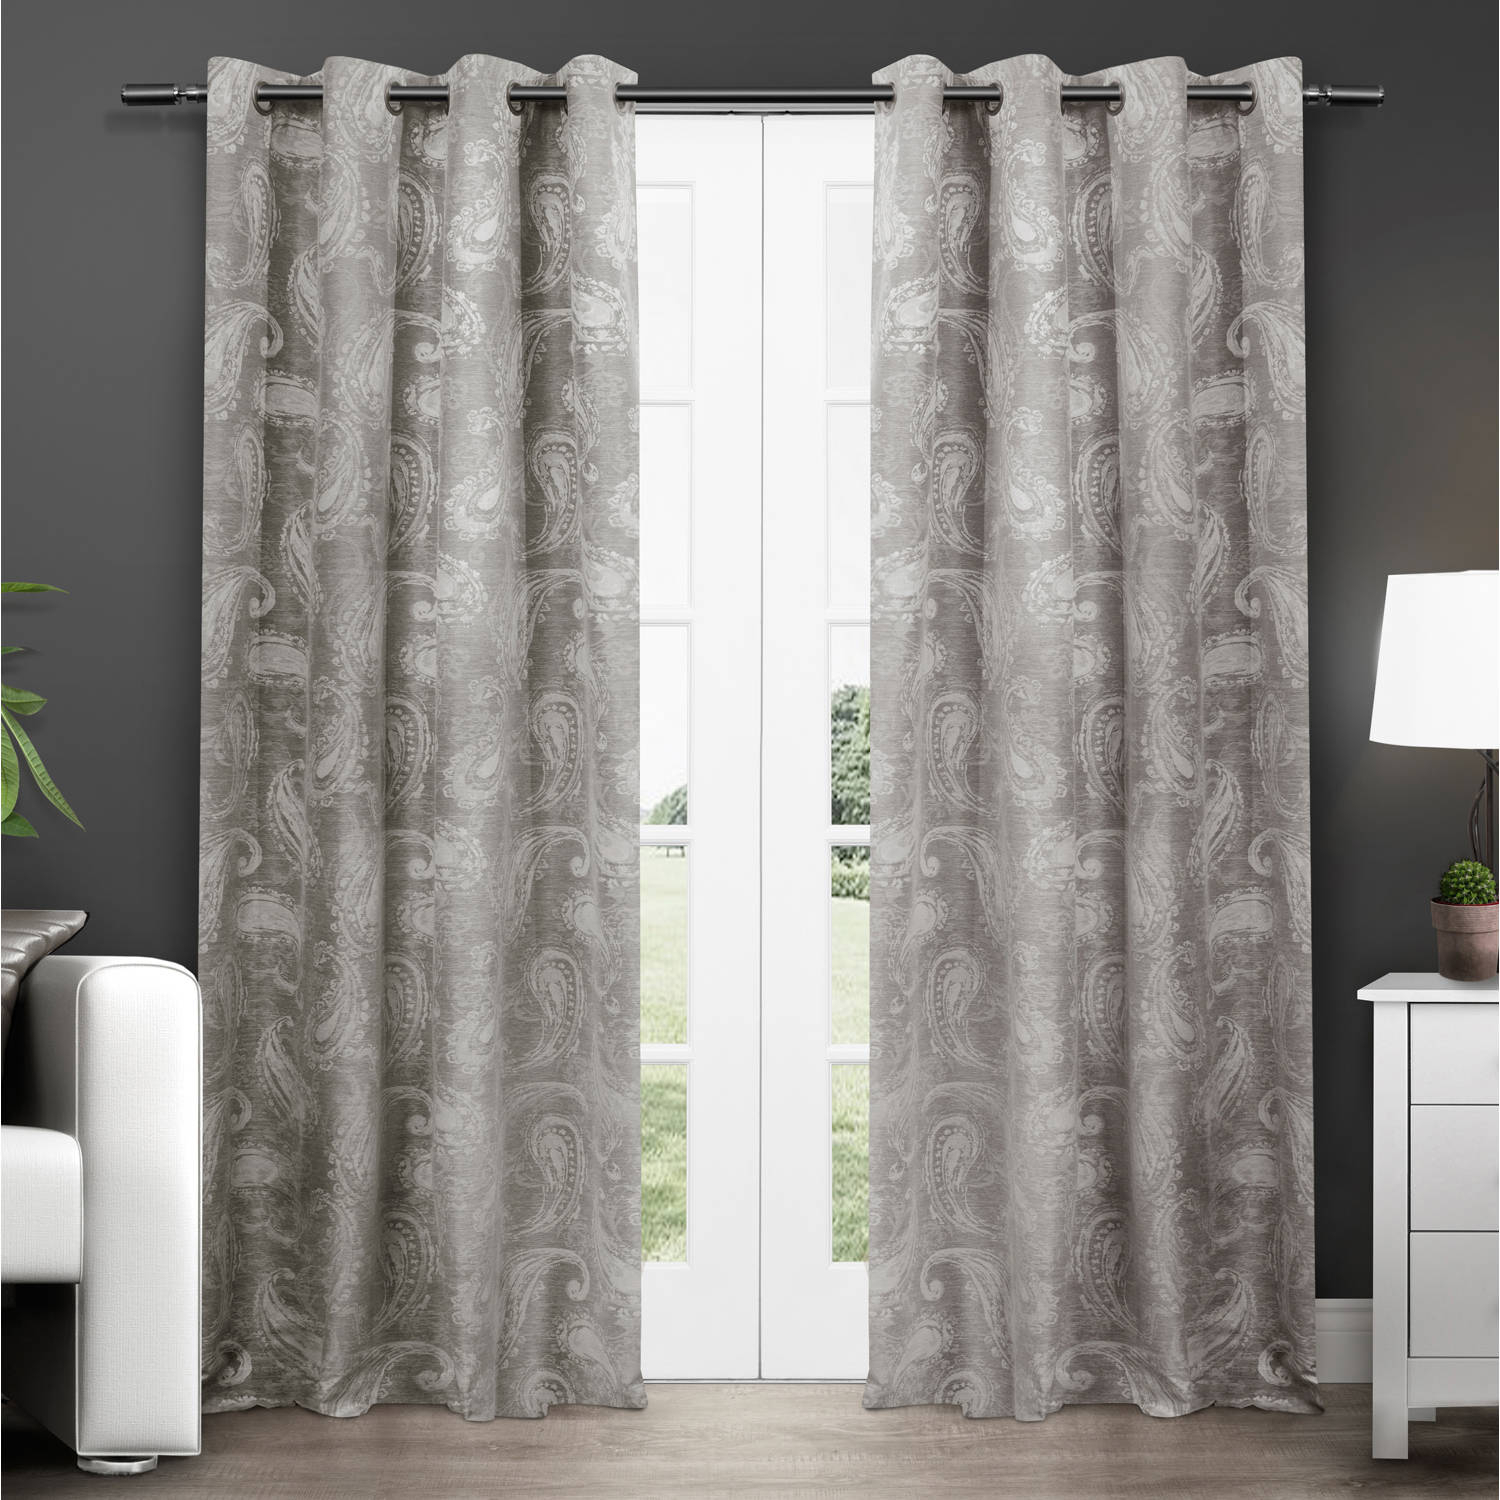 Exclusive Home Bangalore Paisley Thermal Window Curtain Panel Pair With Grommet Top Throughout Grommet Top Thermal Insulated Blackout Curtain Panel Pairs (View 10 of 20)